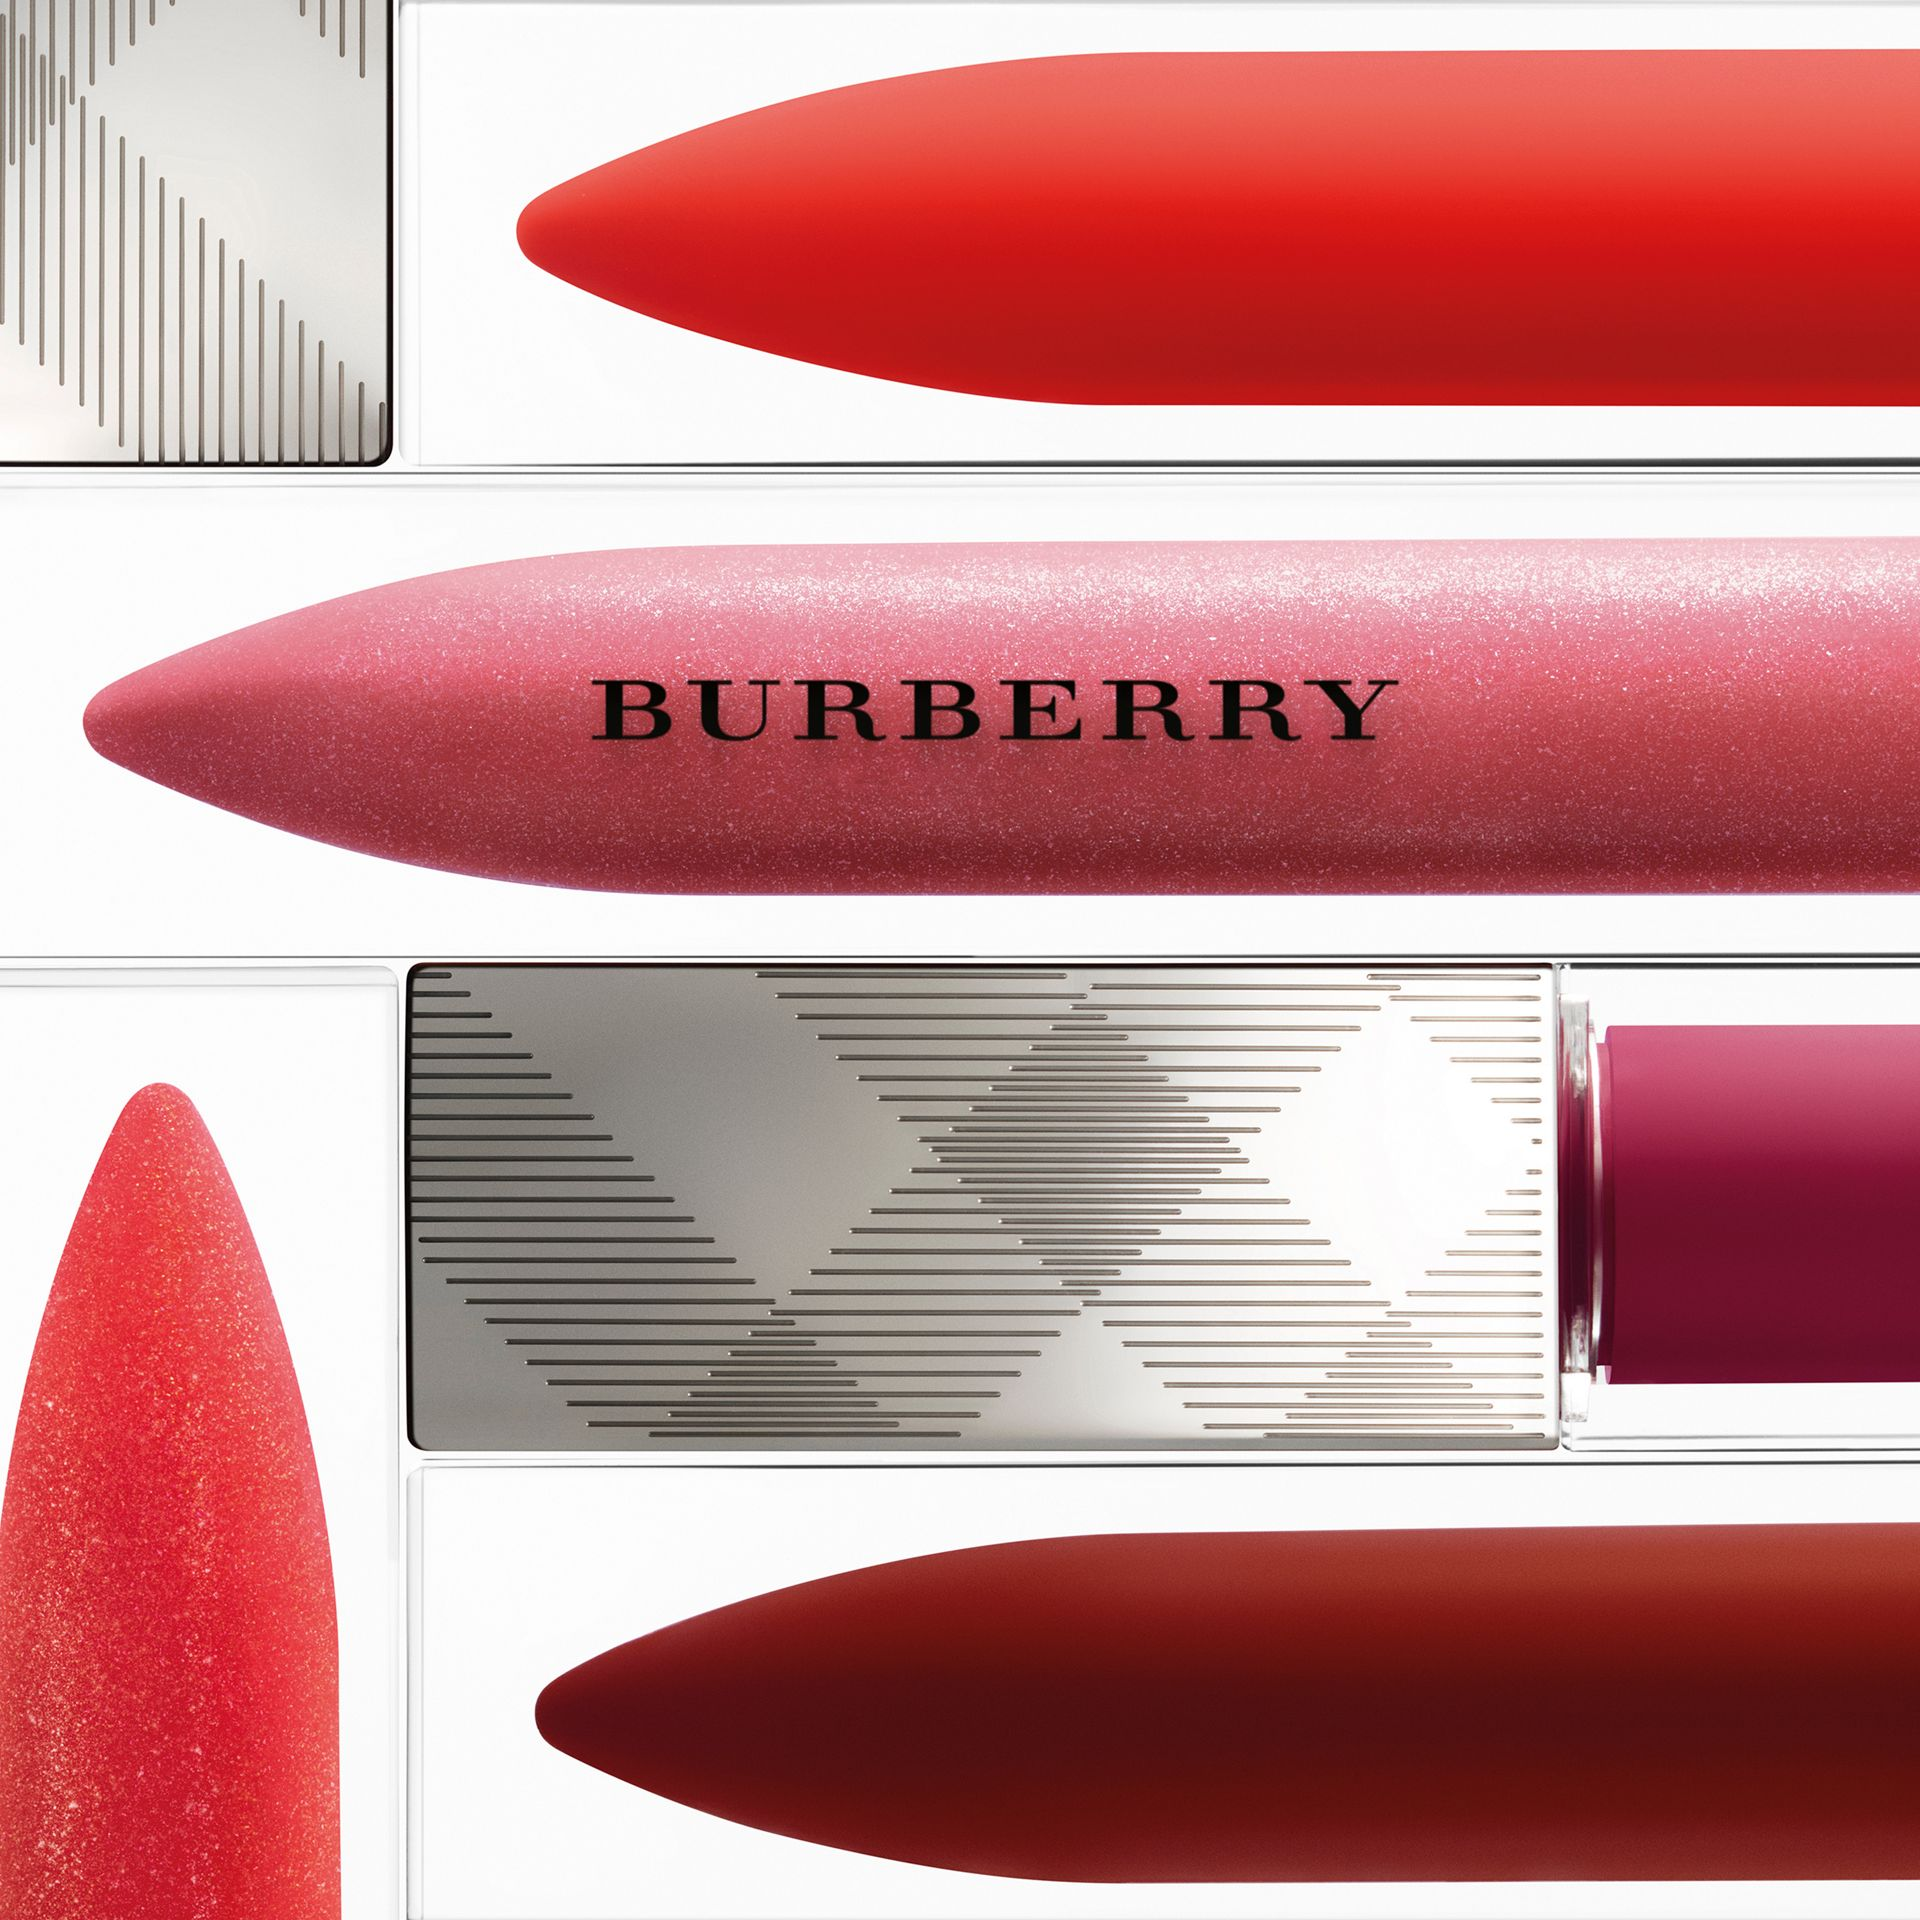 Antique rose no.85 Brilho labial Burberry Kisses Gloss - Antique Rose No.85 - galeria de imagens 3